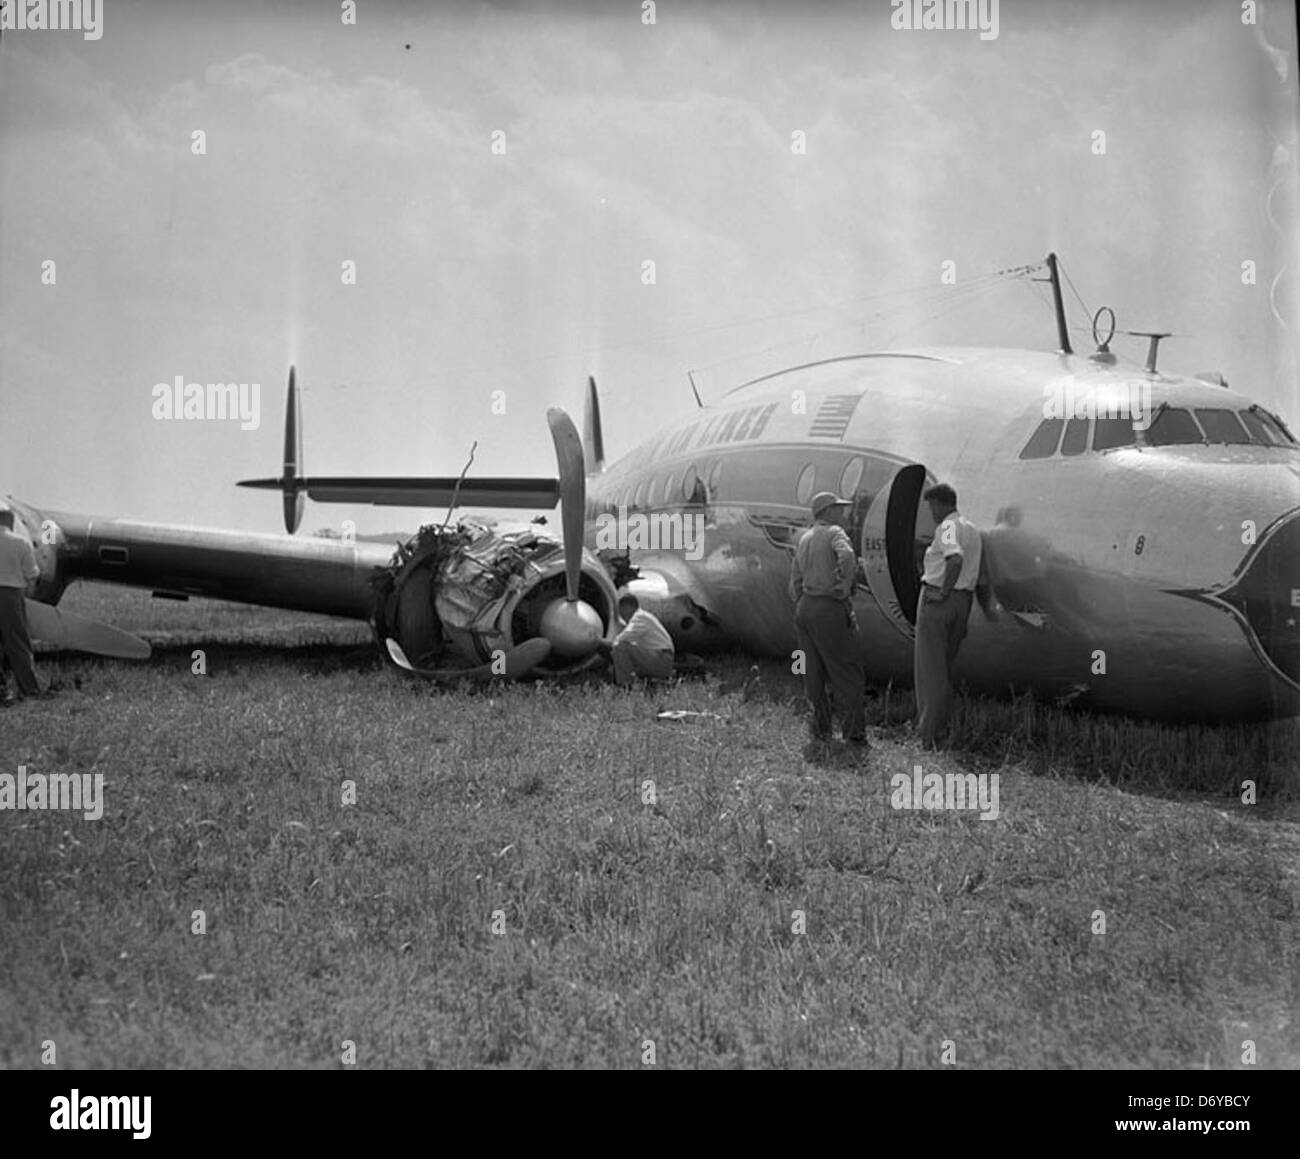 Eastern Air Liner crash landing, Curles Neck Farm - Stock Image